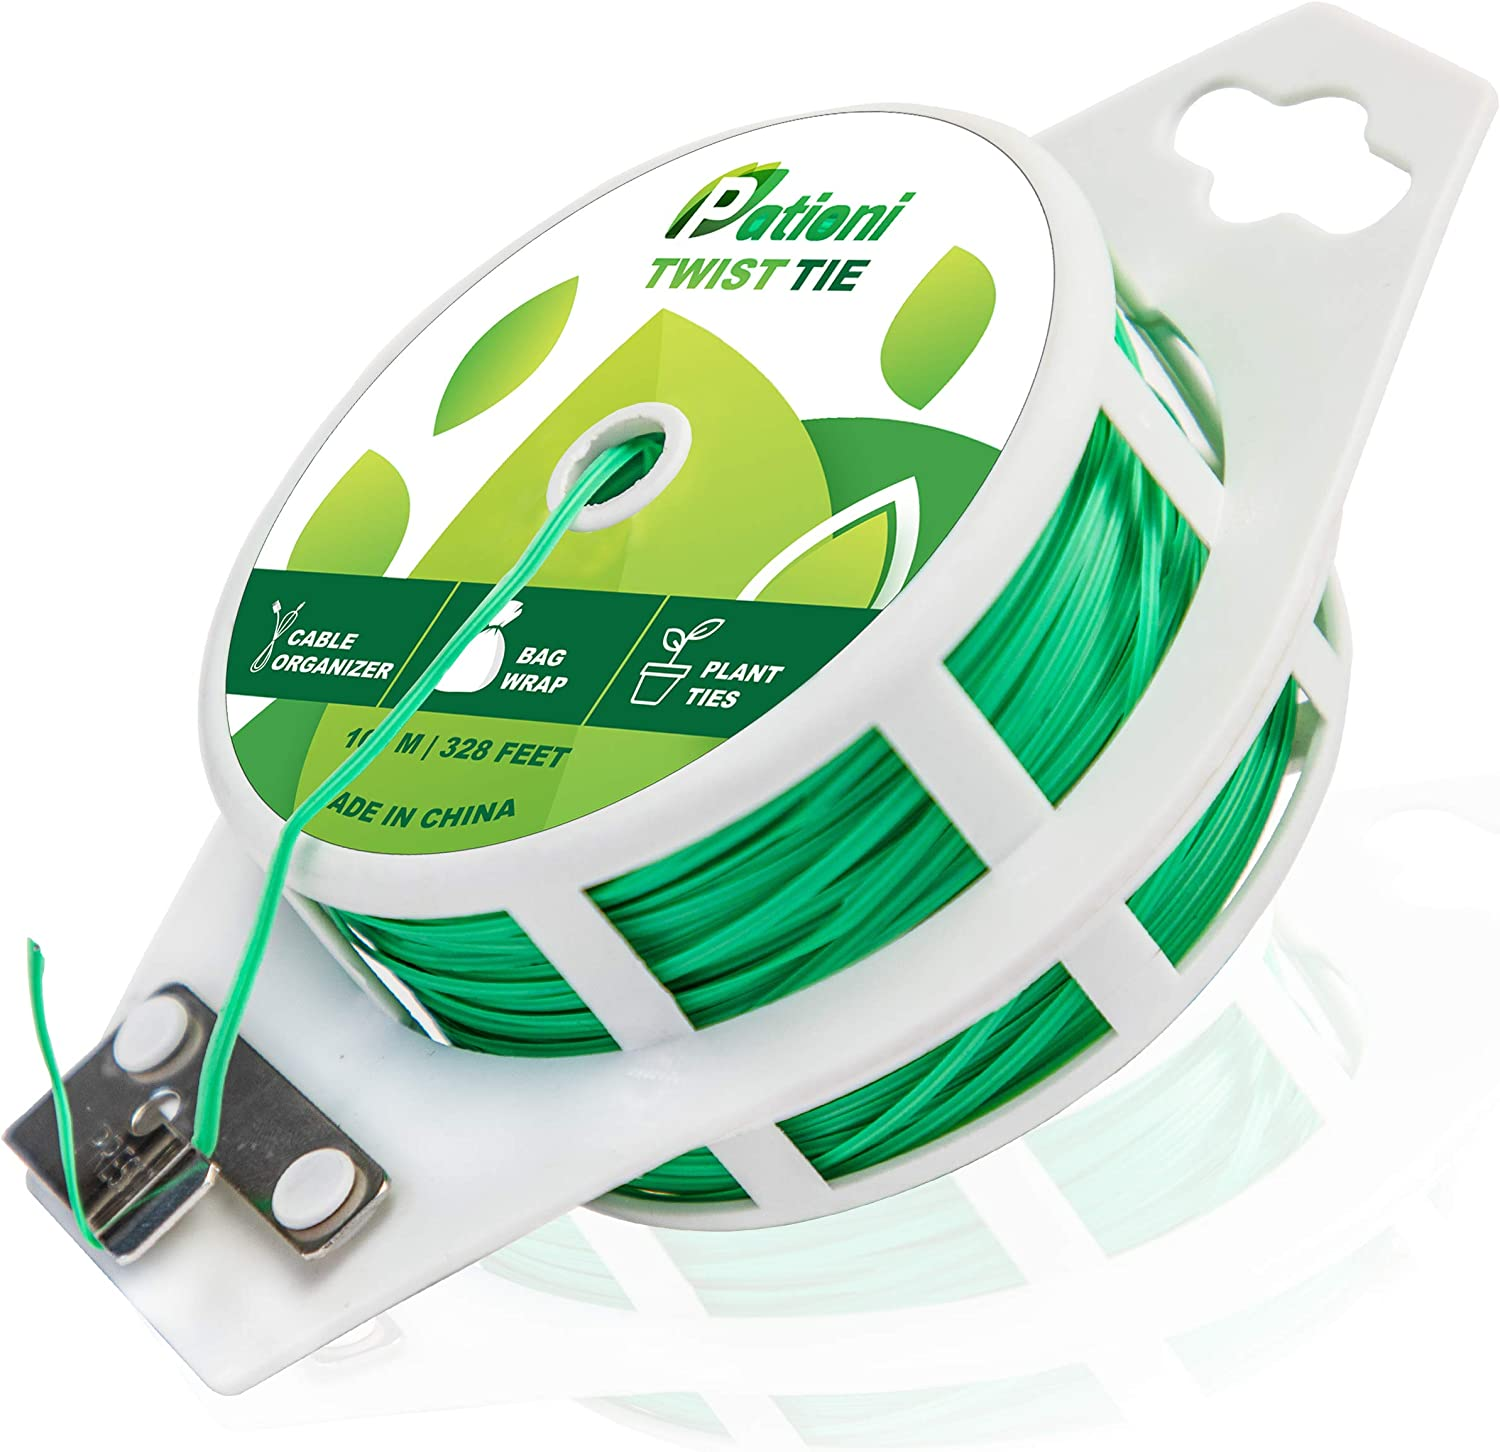 PATIONI Rot-X Plant Twist Ties - Advanced Rot-Free Water Channeling Design Protects Stems & Trunks from Damage - Smooth Rust-Free Weatherproof Green Plant Ties - 328 FT w/Plant Ties with Easy Cutter